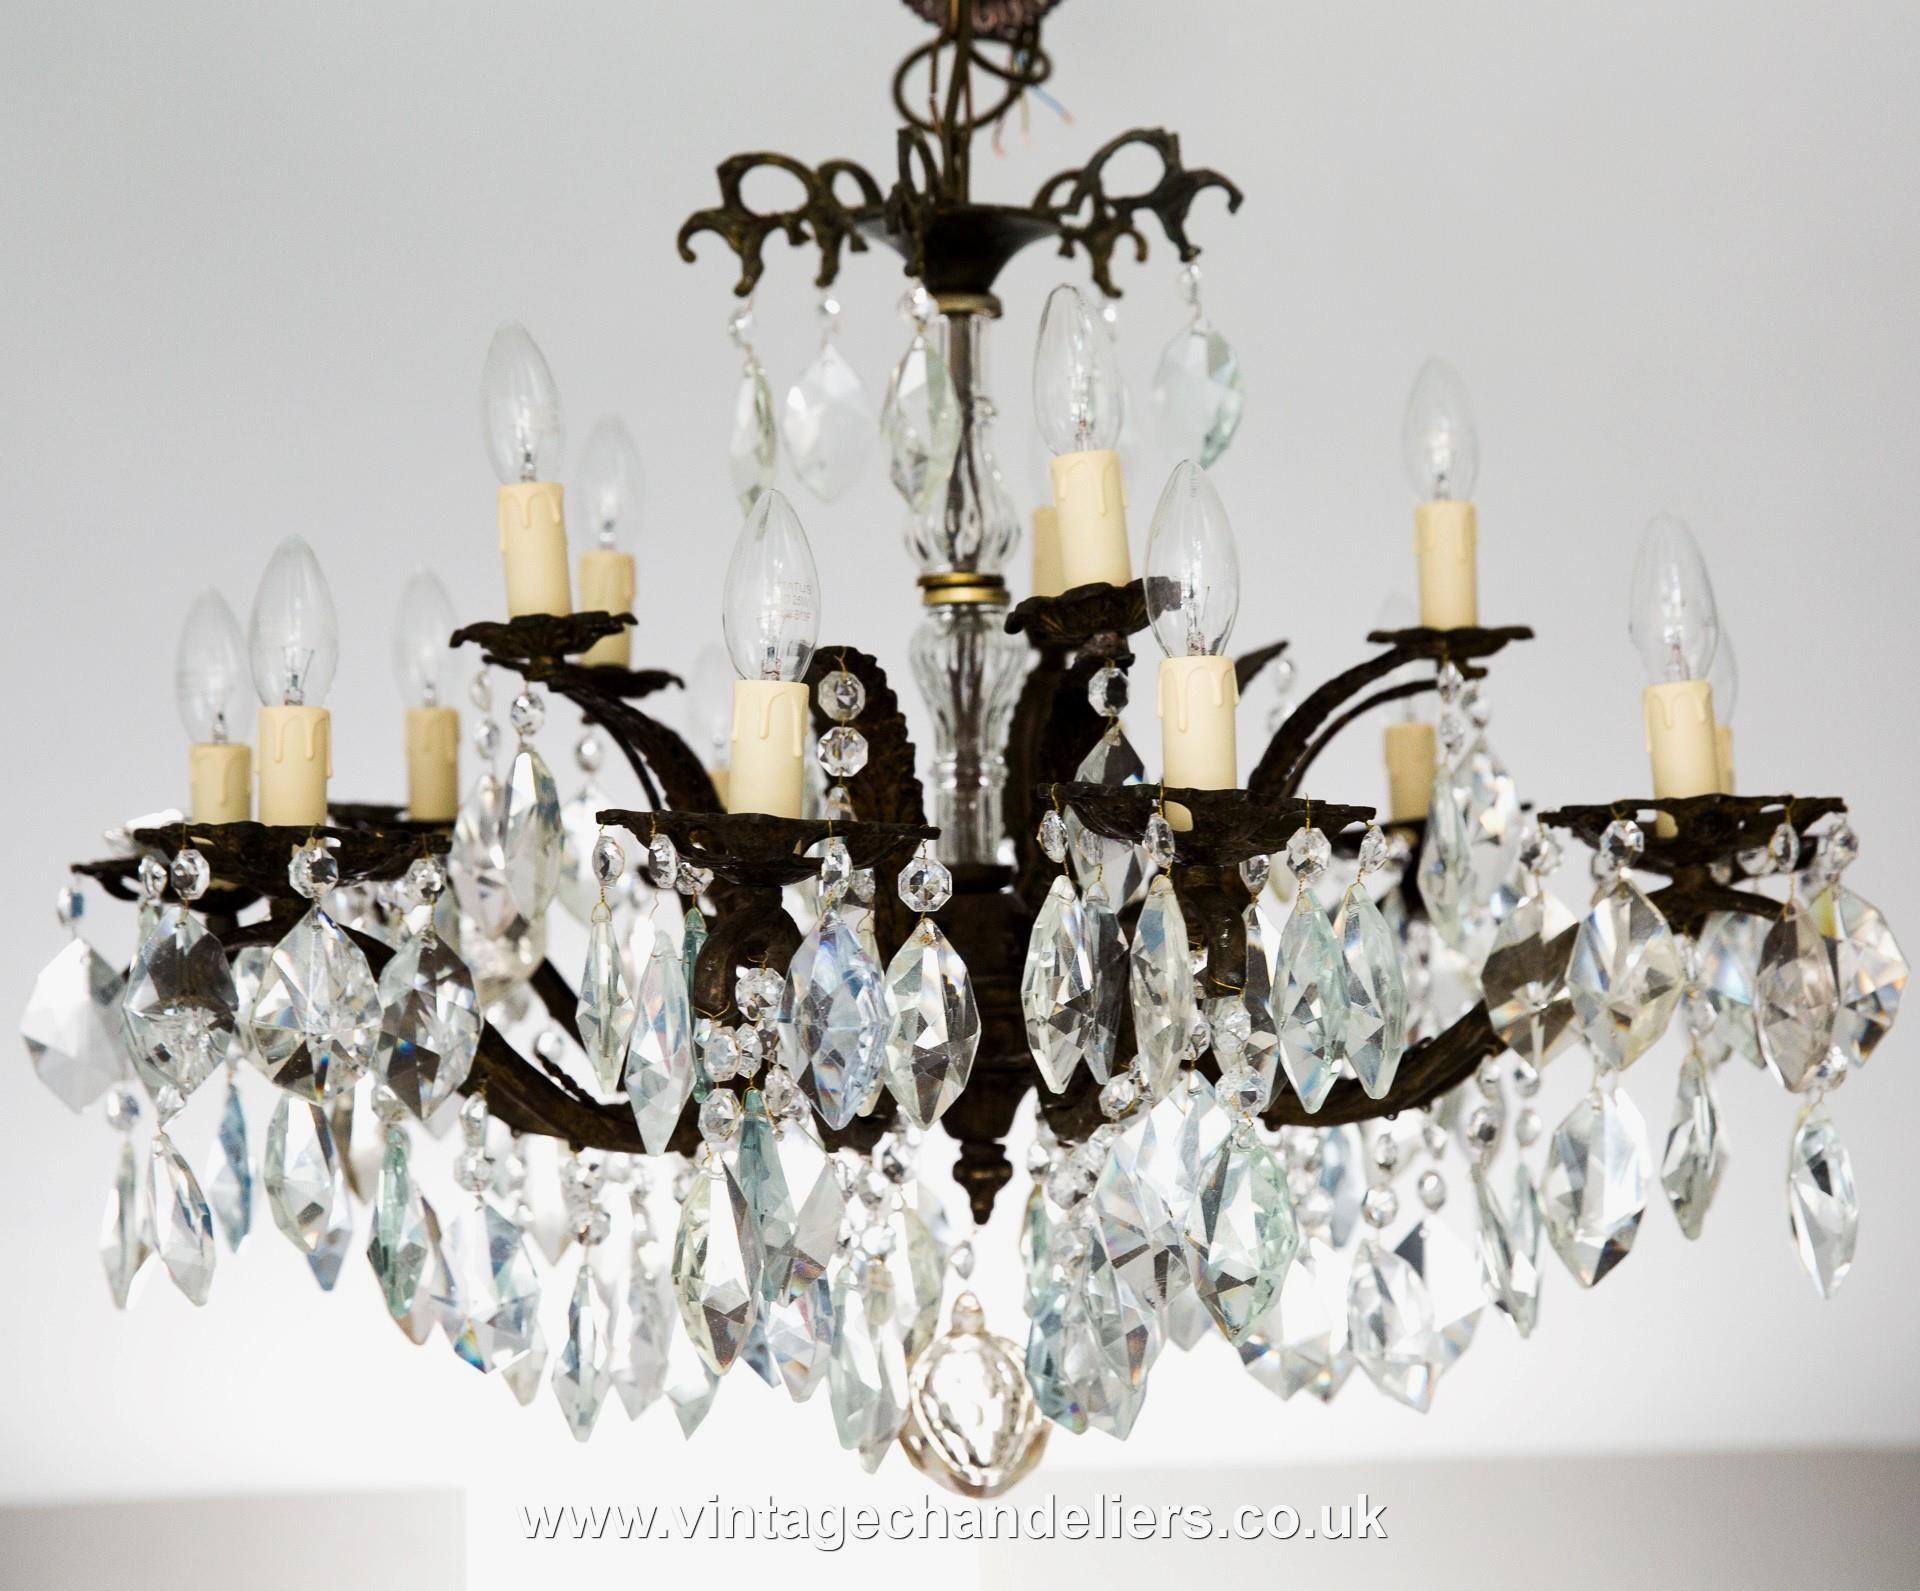 Chandeliers honeyb vintagechandelier antiquechandelier eclectic chandeliers honeyb vintagechandelier antiquechandelier eclectic chandelier brasschandelier chandeliers aloadofball